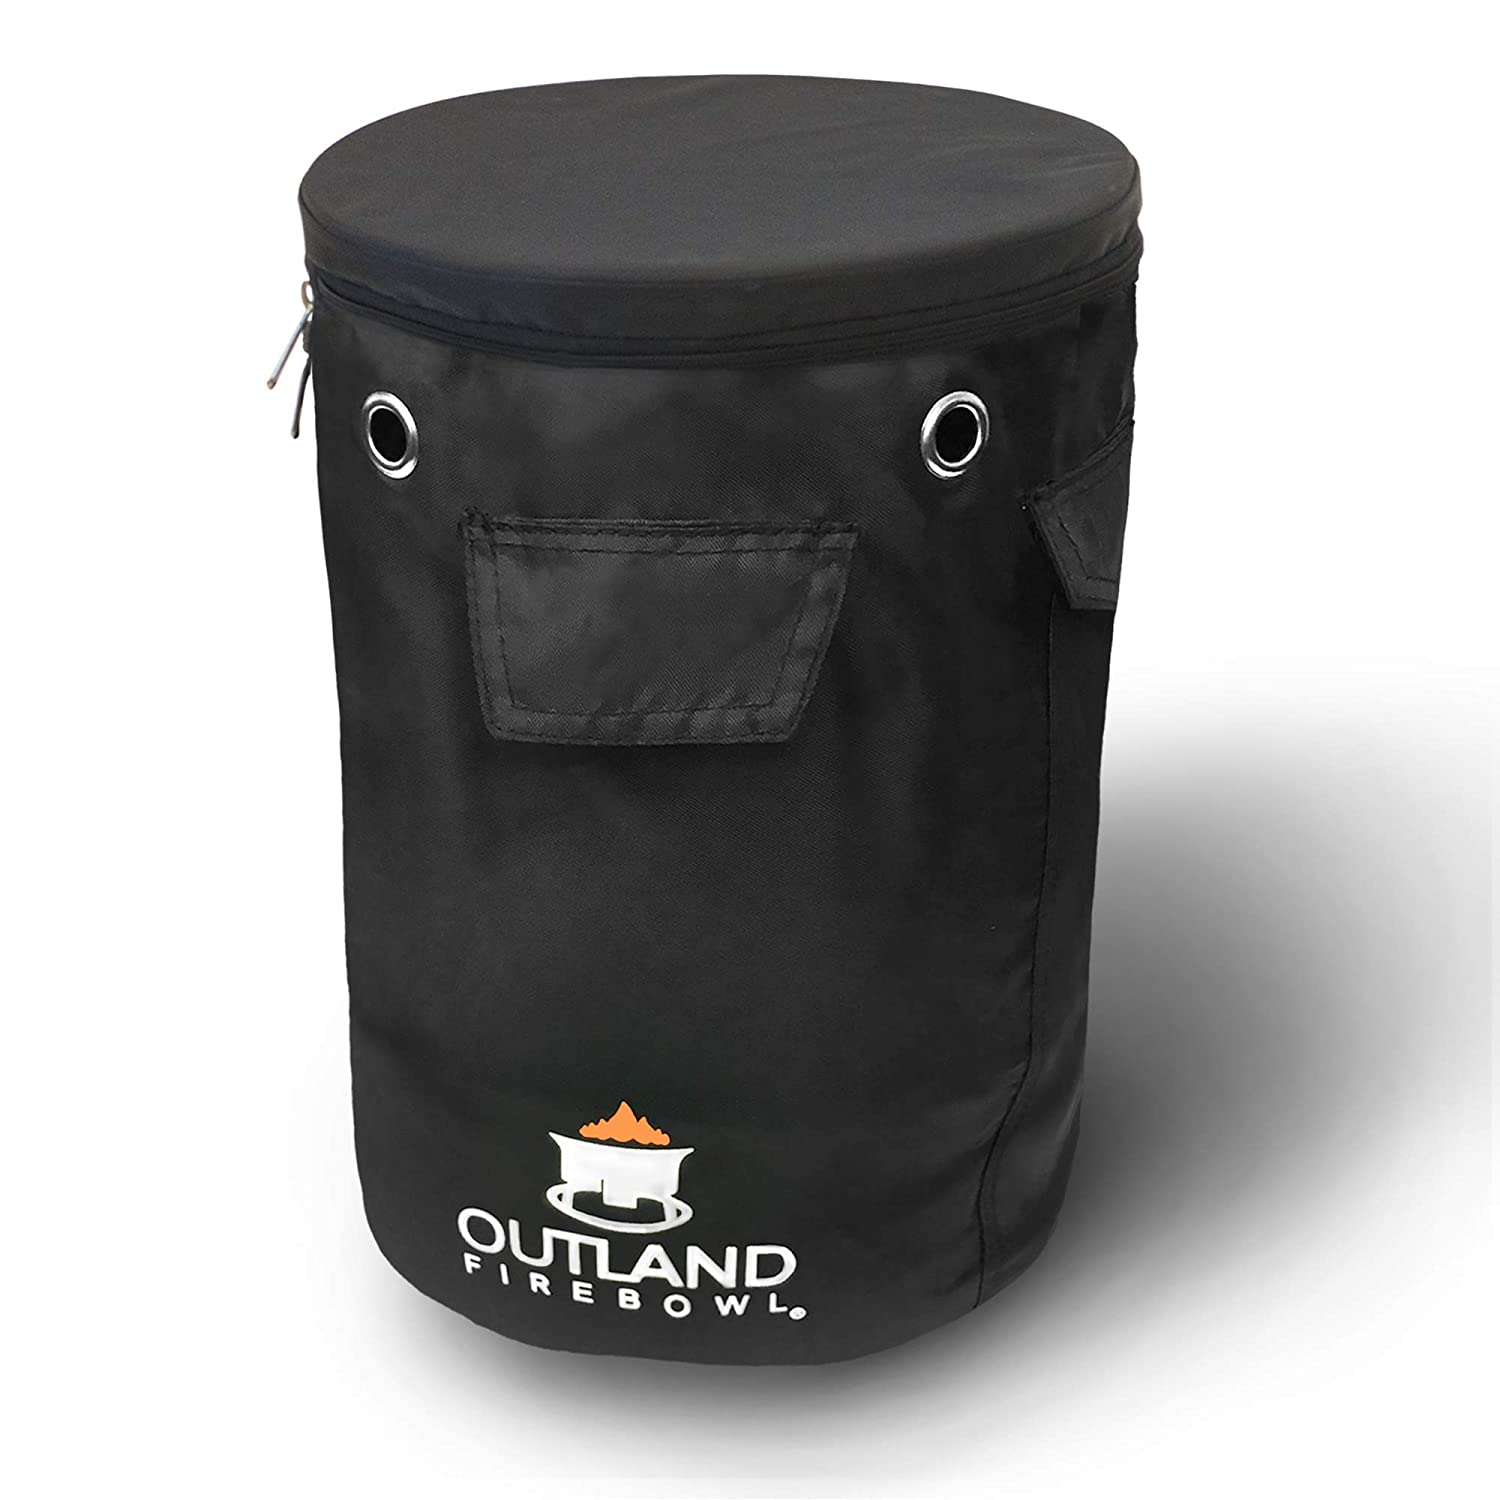 Outland Firebowl UV and Weather Resistant 740 Propane Gas Tank Cover with Stable Tabletop Feature, Fits Standard 20 lb Tank Cylinder, Ventilated with Storage Pocket Outland Living